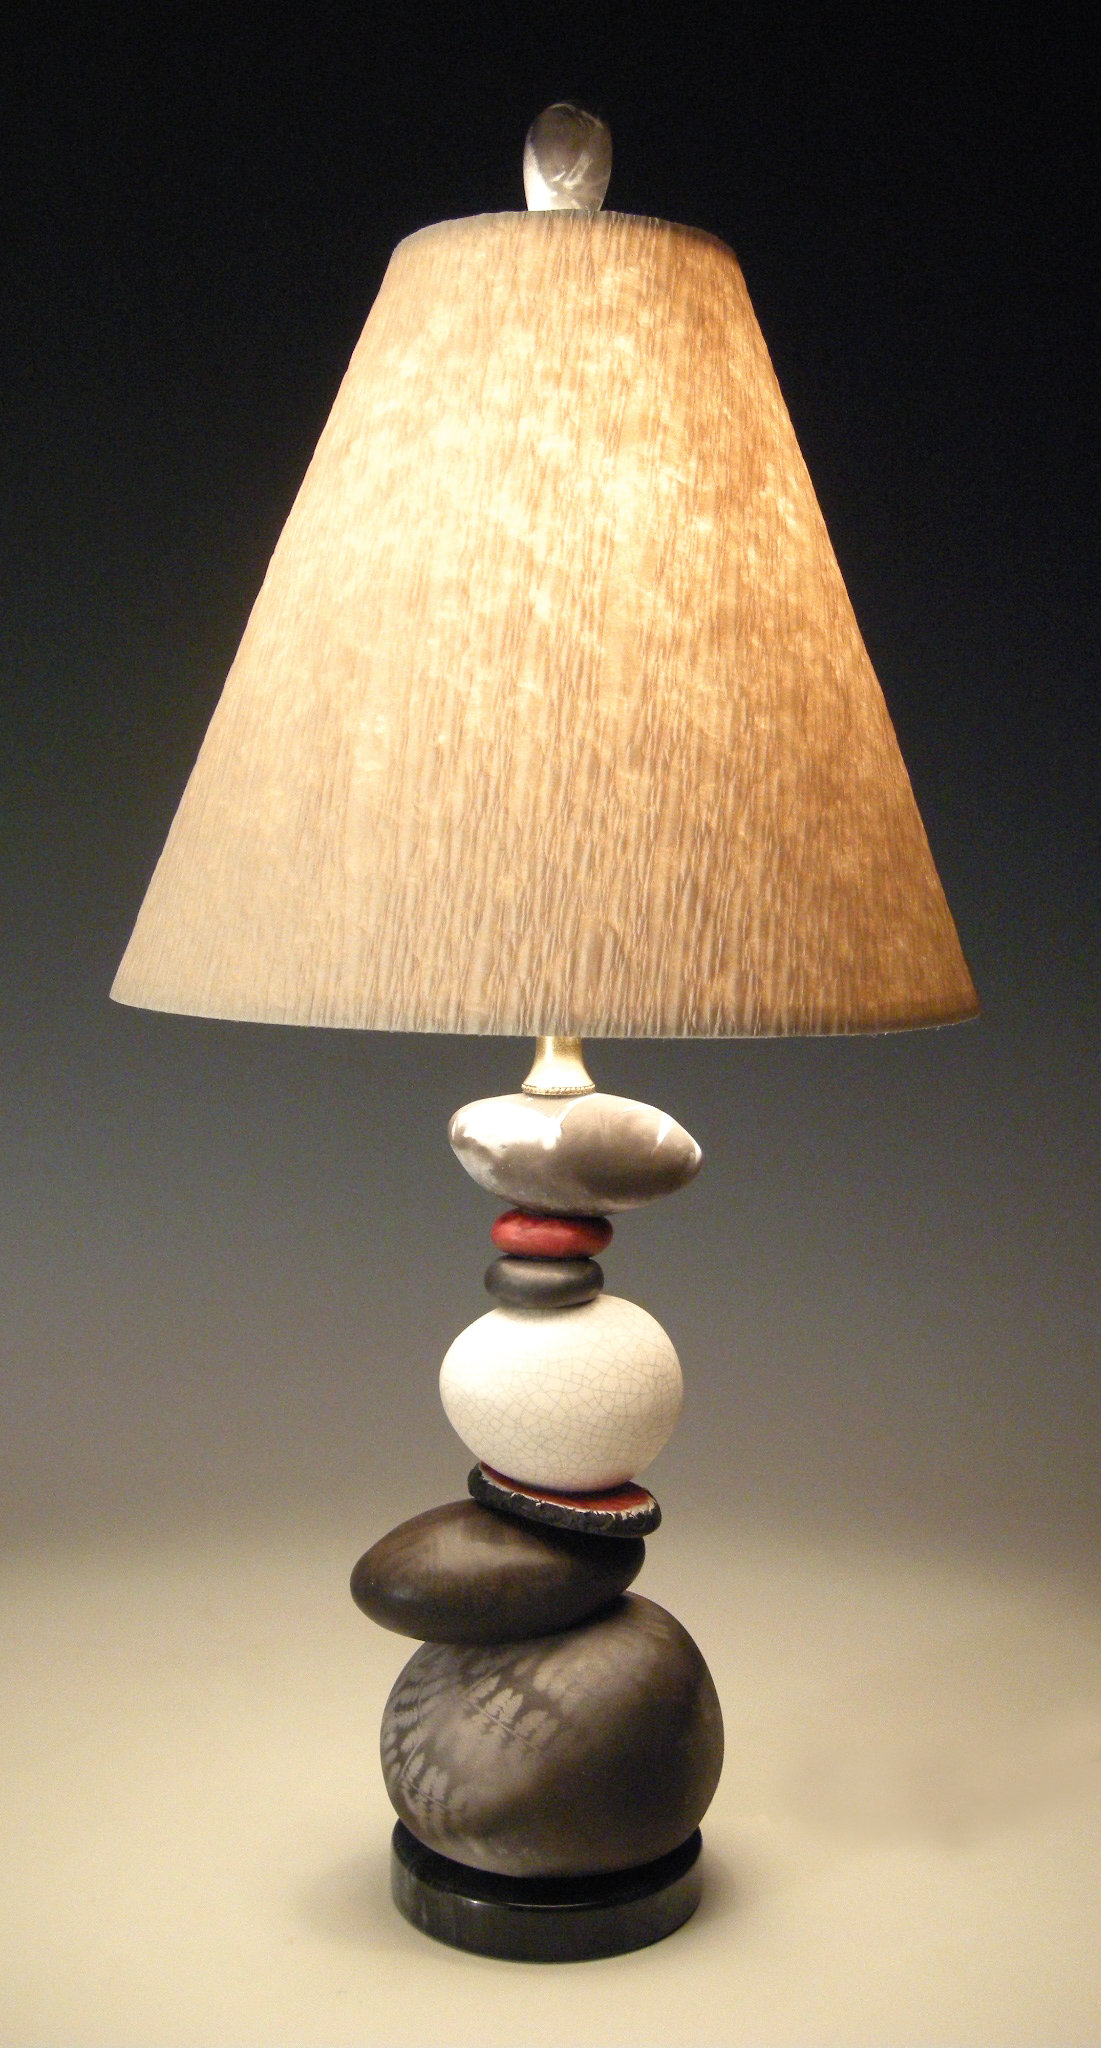 Shadow And Light By Jan Jacque Ceramic Table Lamp Artful Home